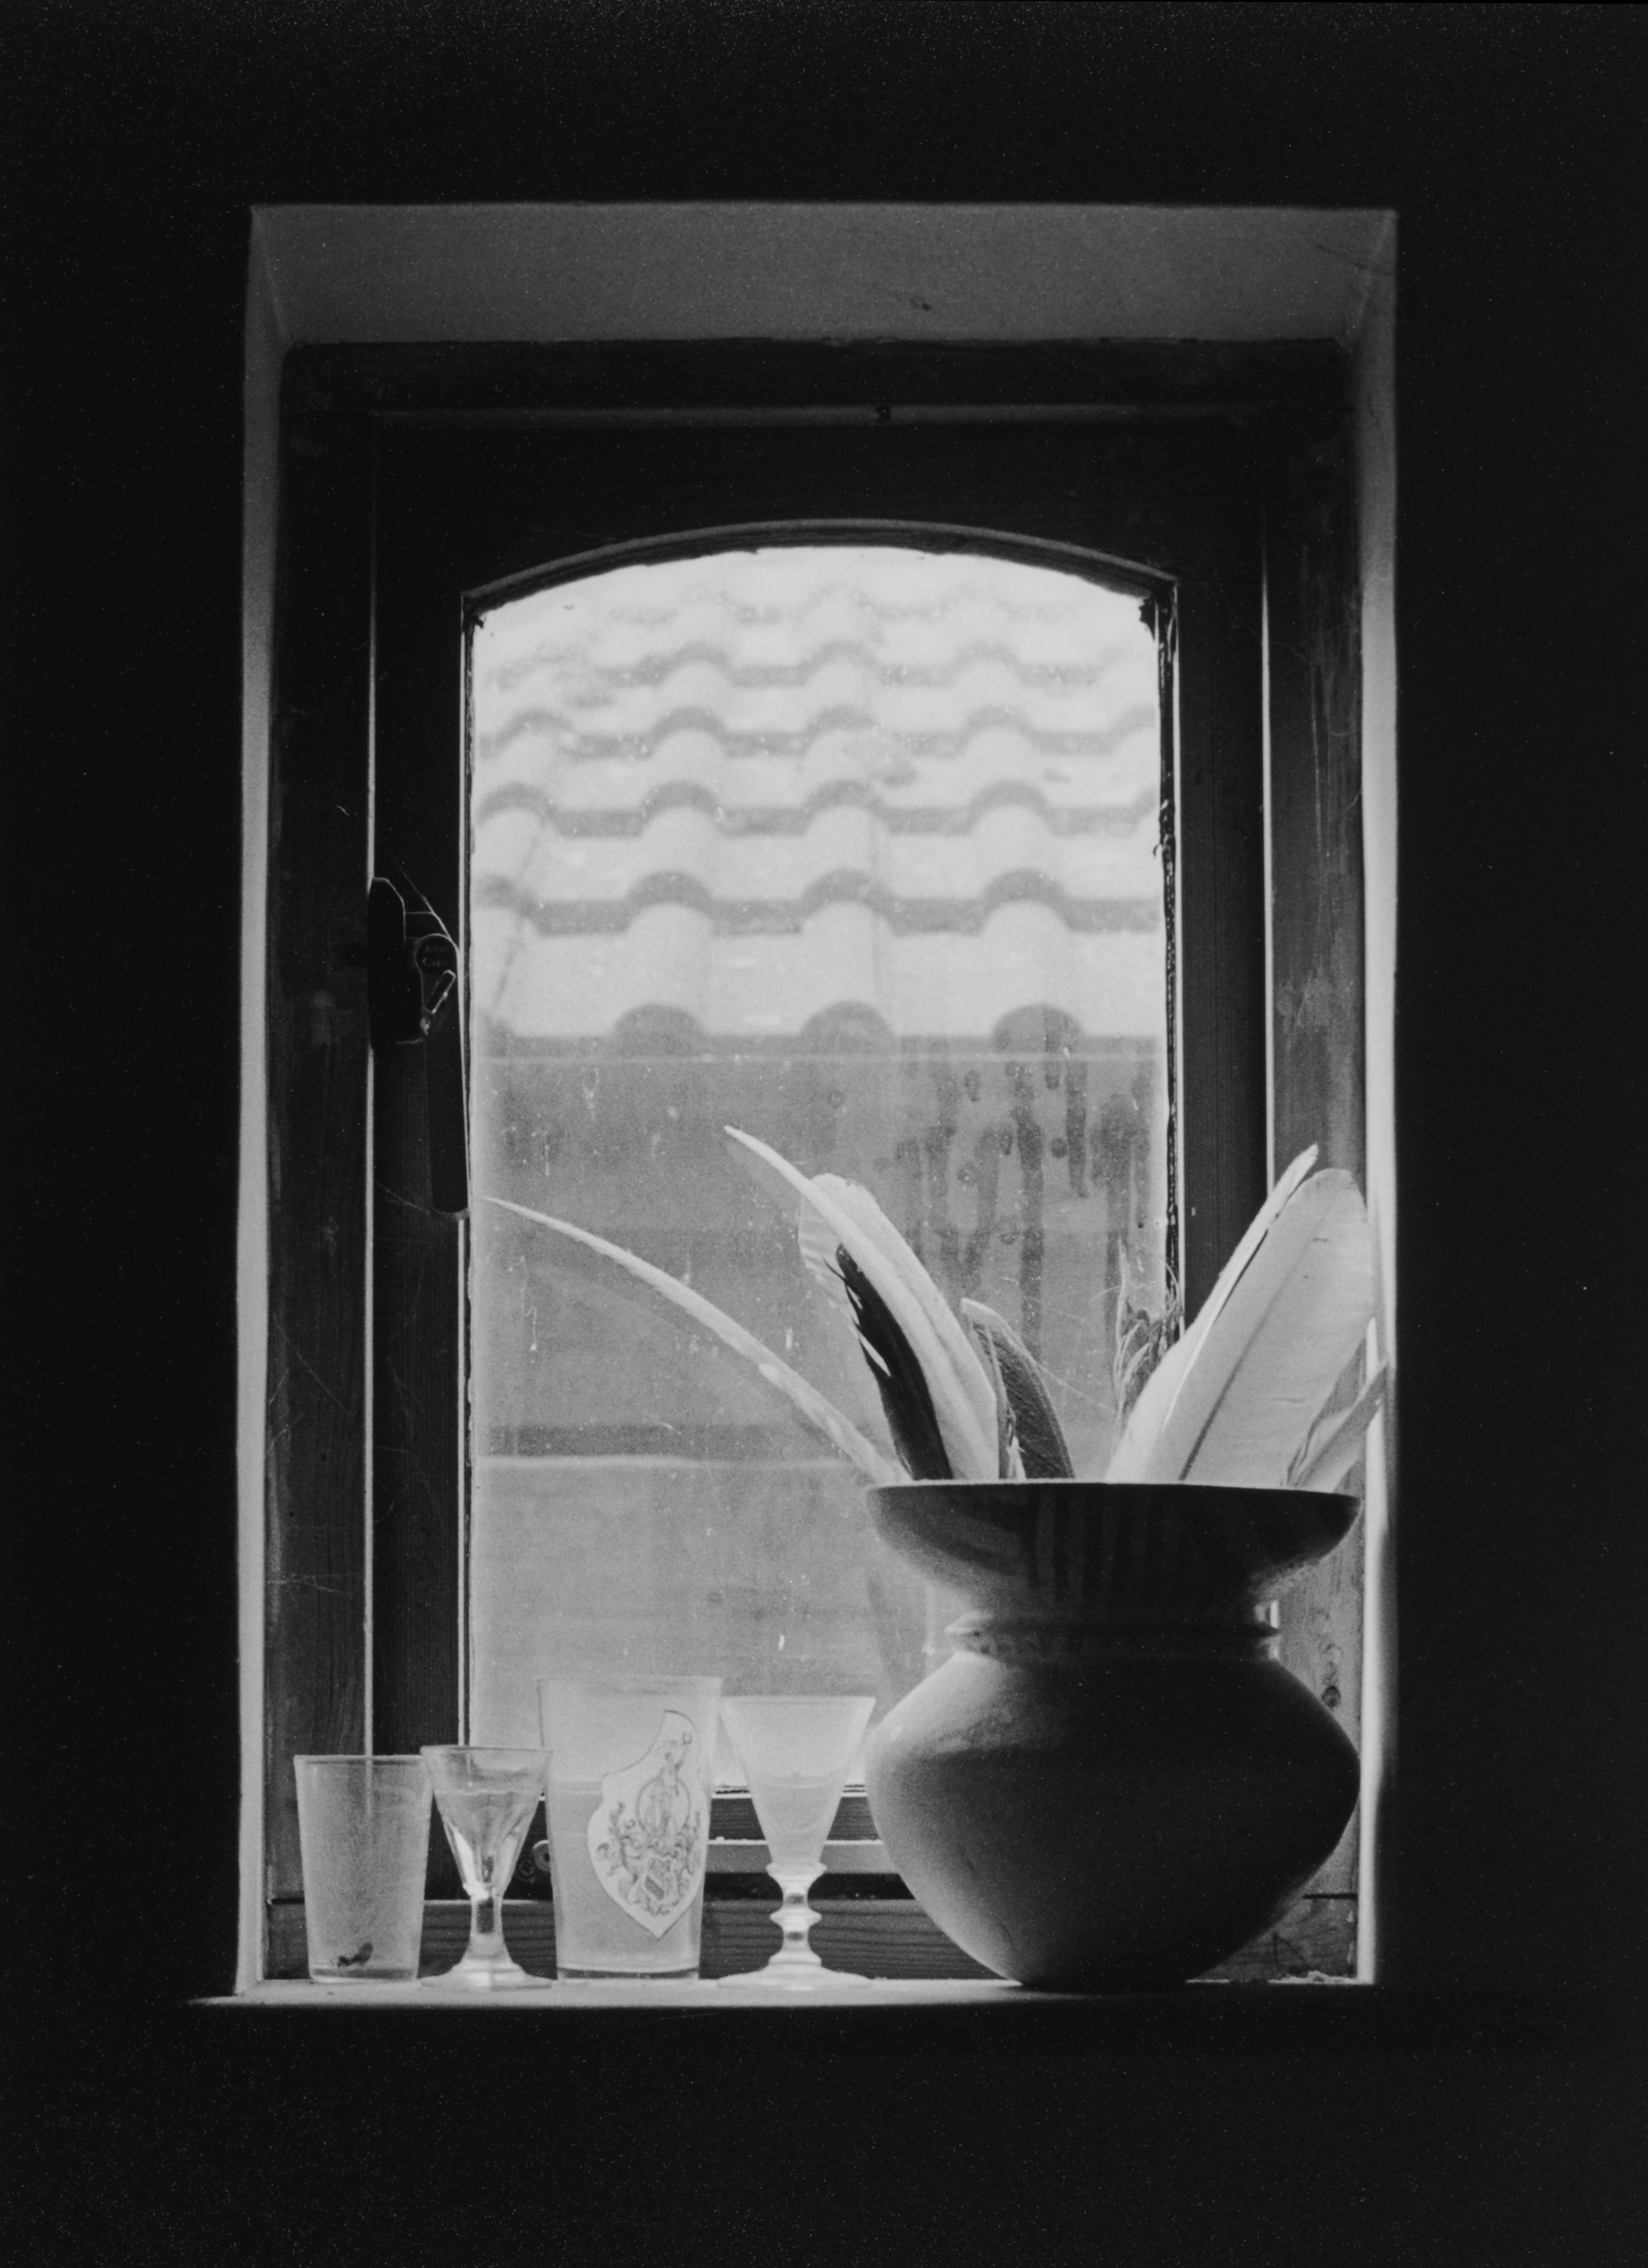 Lotte Attwood, Vase of Feathers